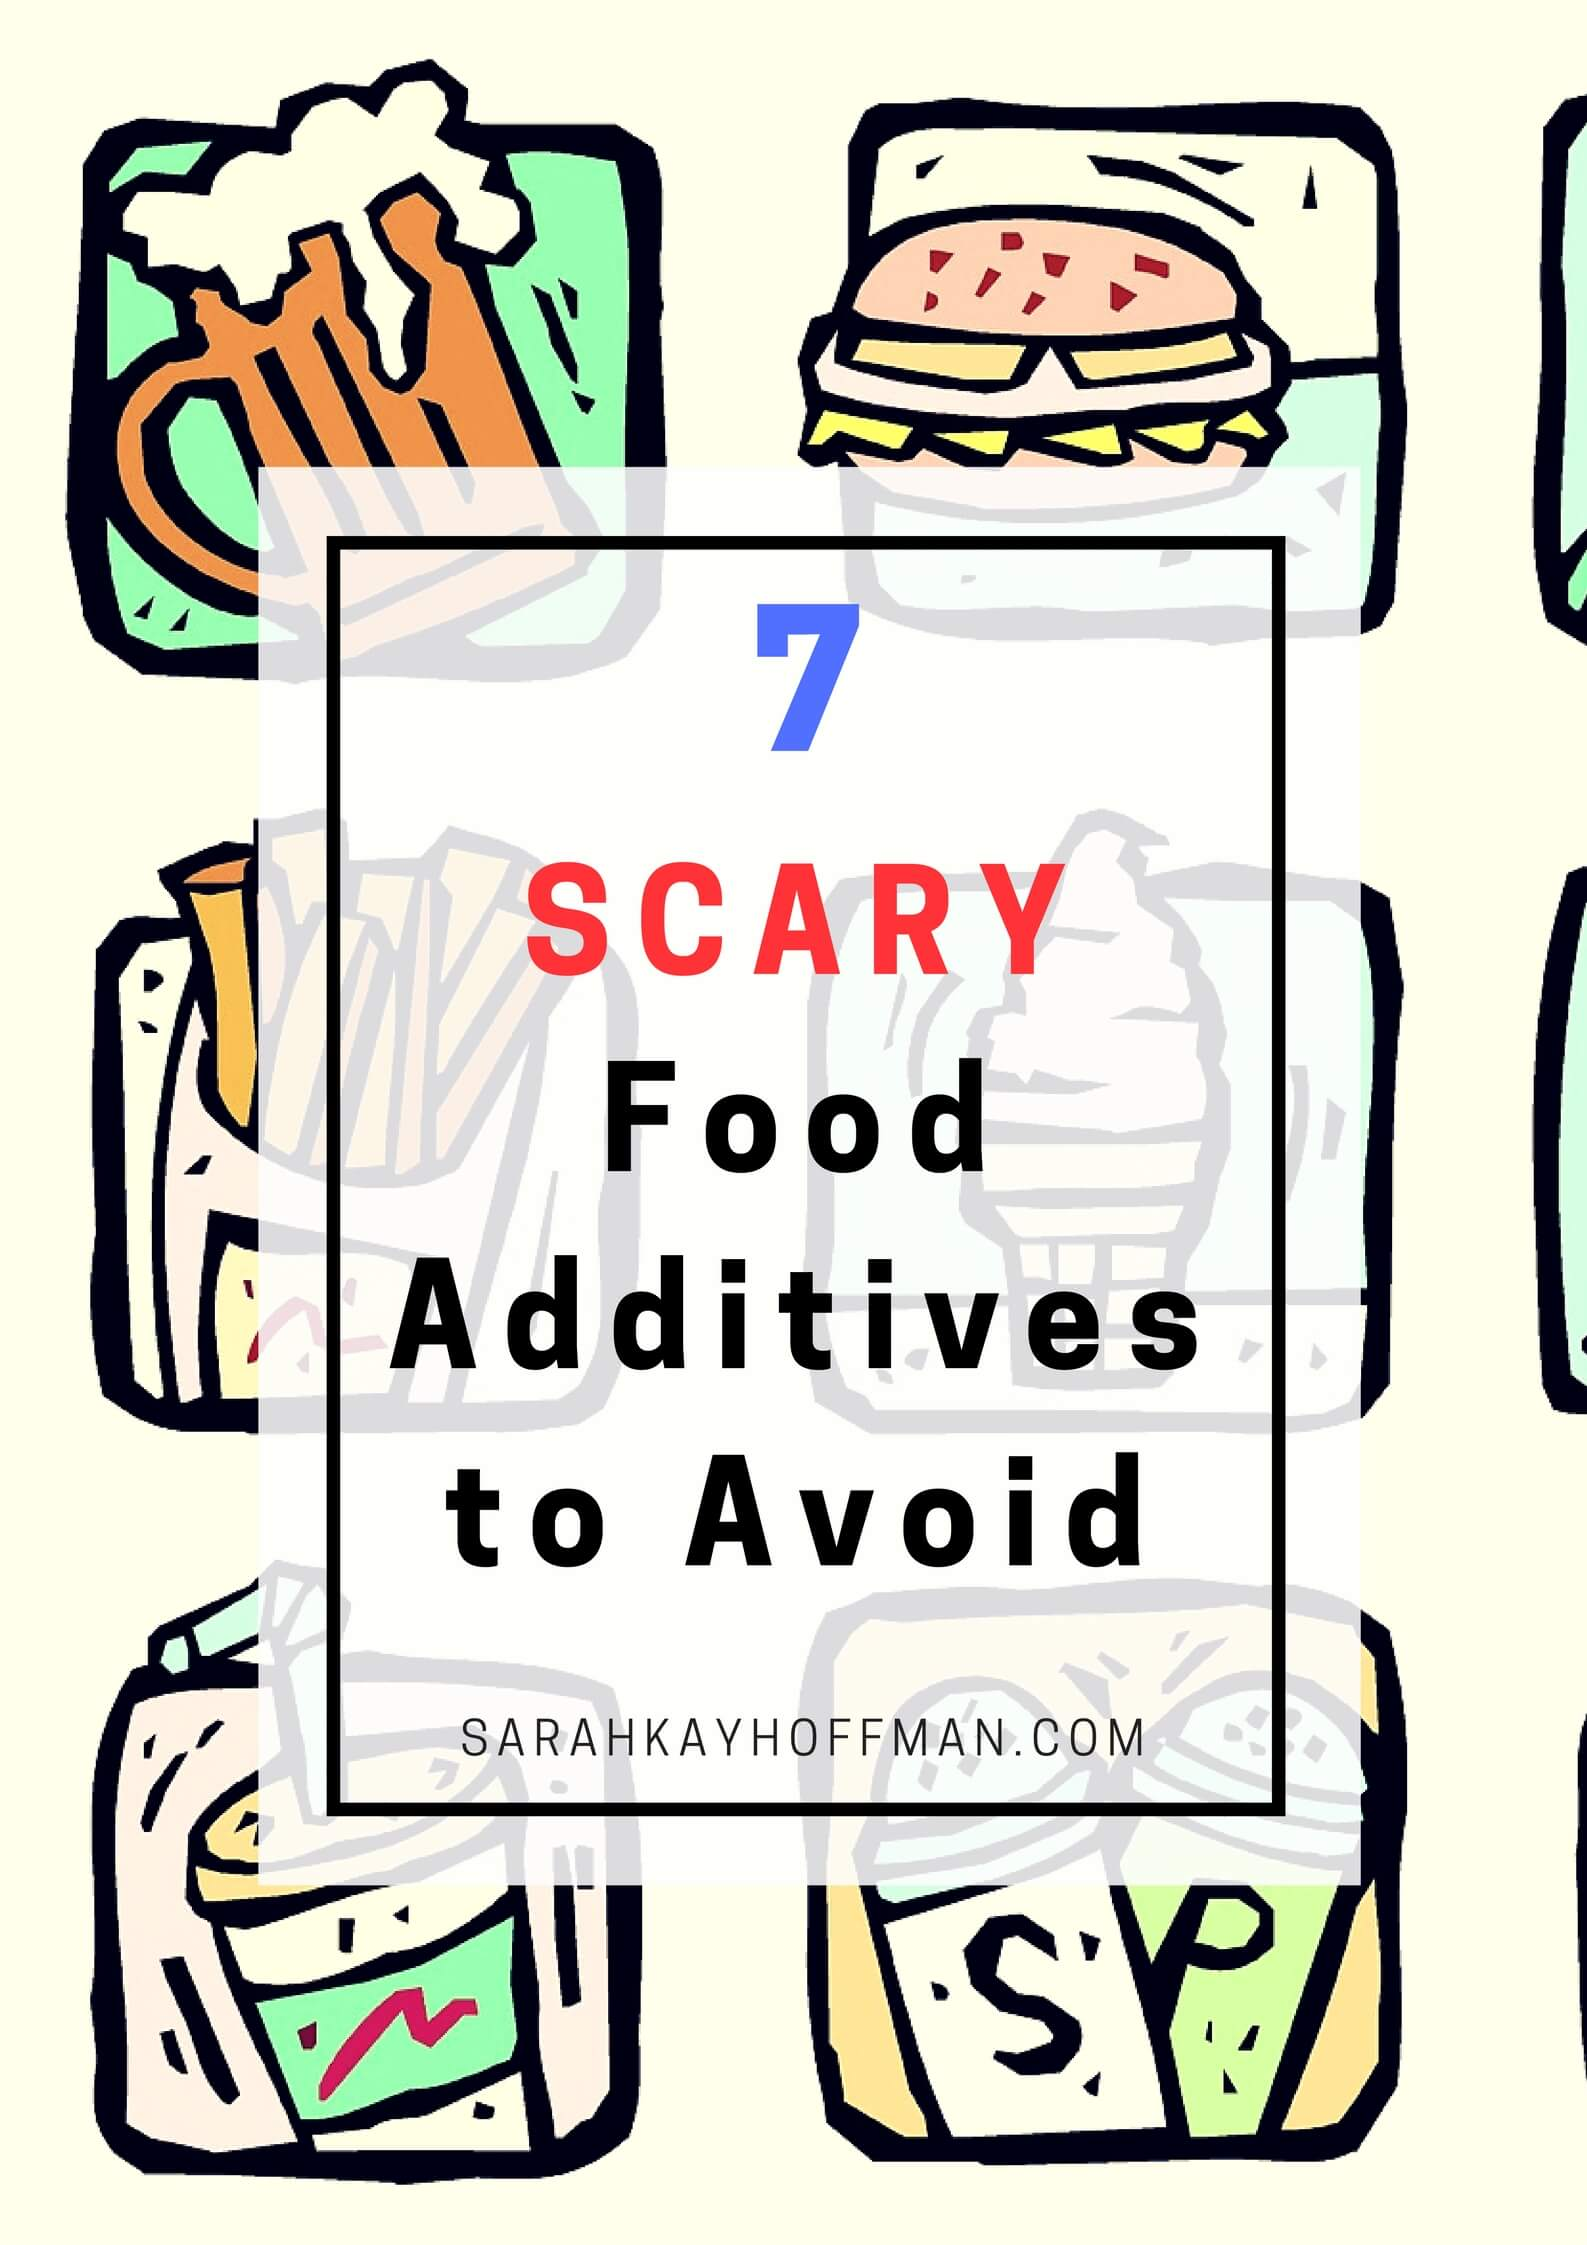 7 Scary Food Additives to Avoid sarahkayhoffman.com #guthealth #healthyliving #food